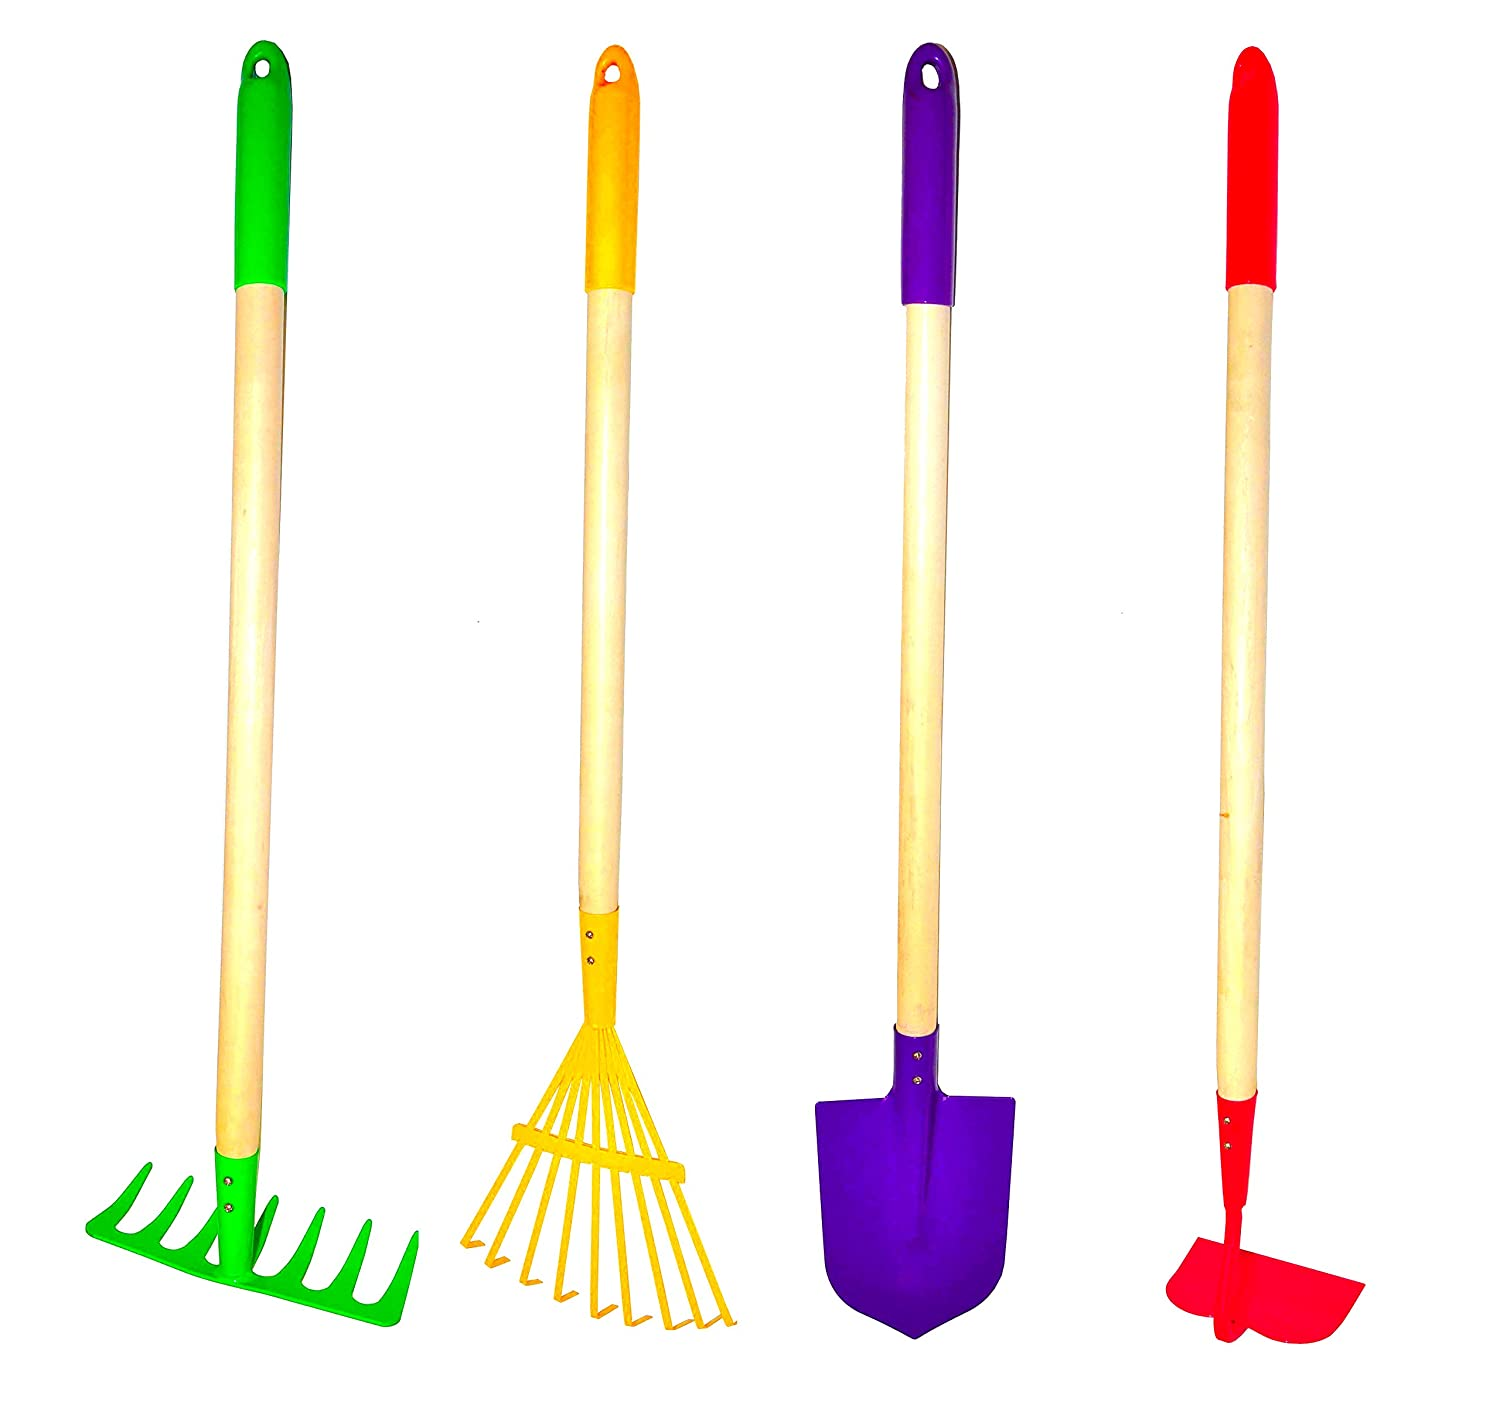 G & F Products JustForKids Kids Garden Tool Set Toy, Rake, Spade, Hoe and Leaf Rake, reduced size, 4-Piece